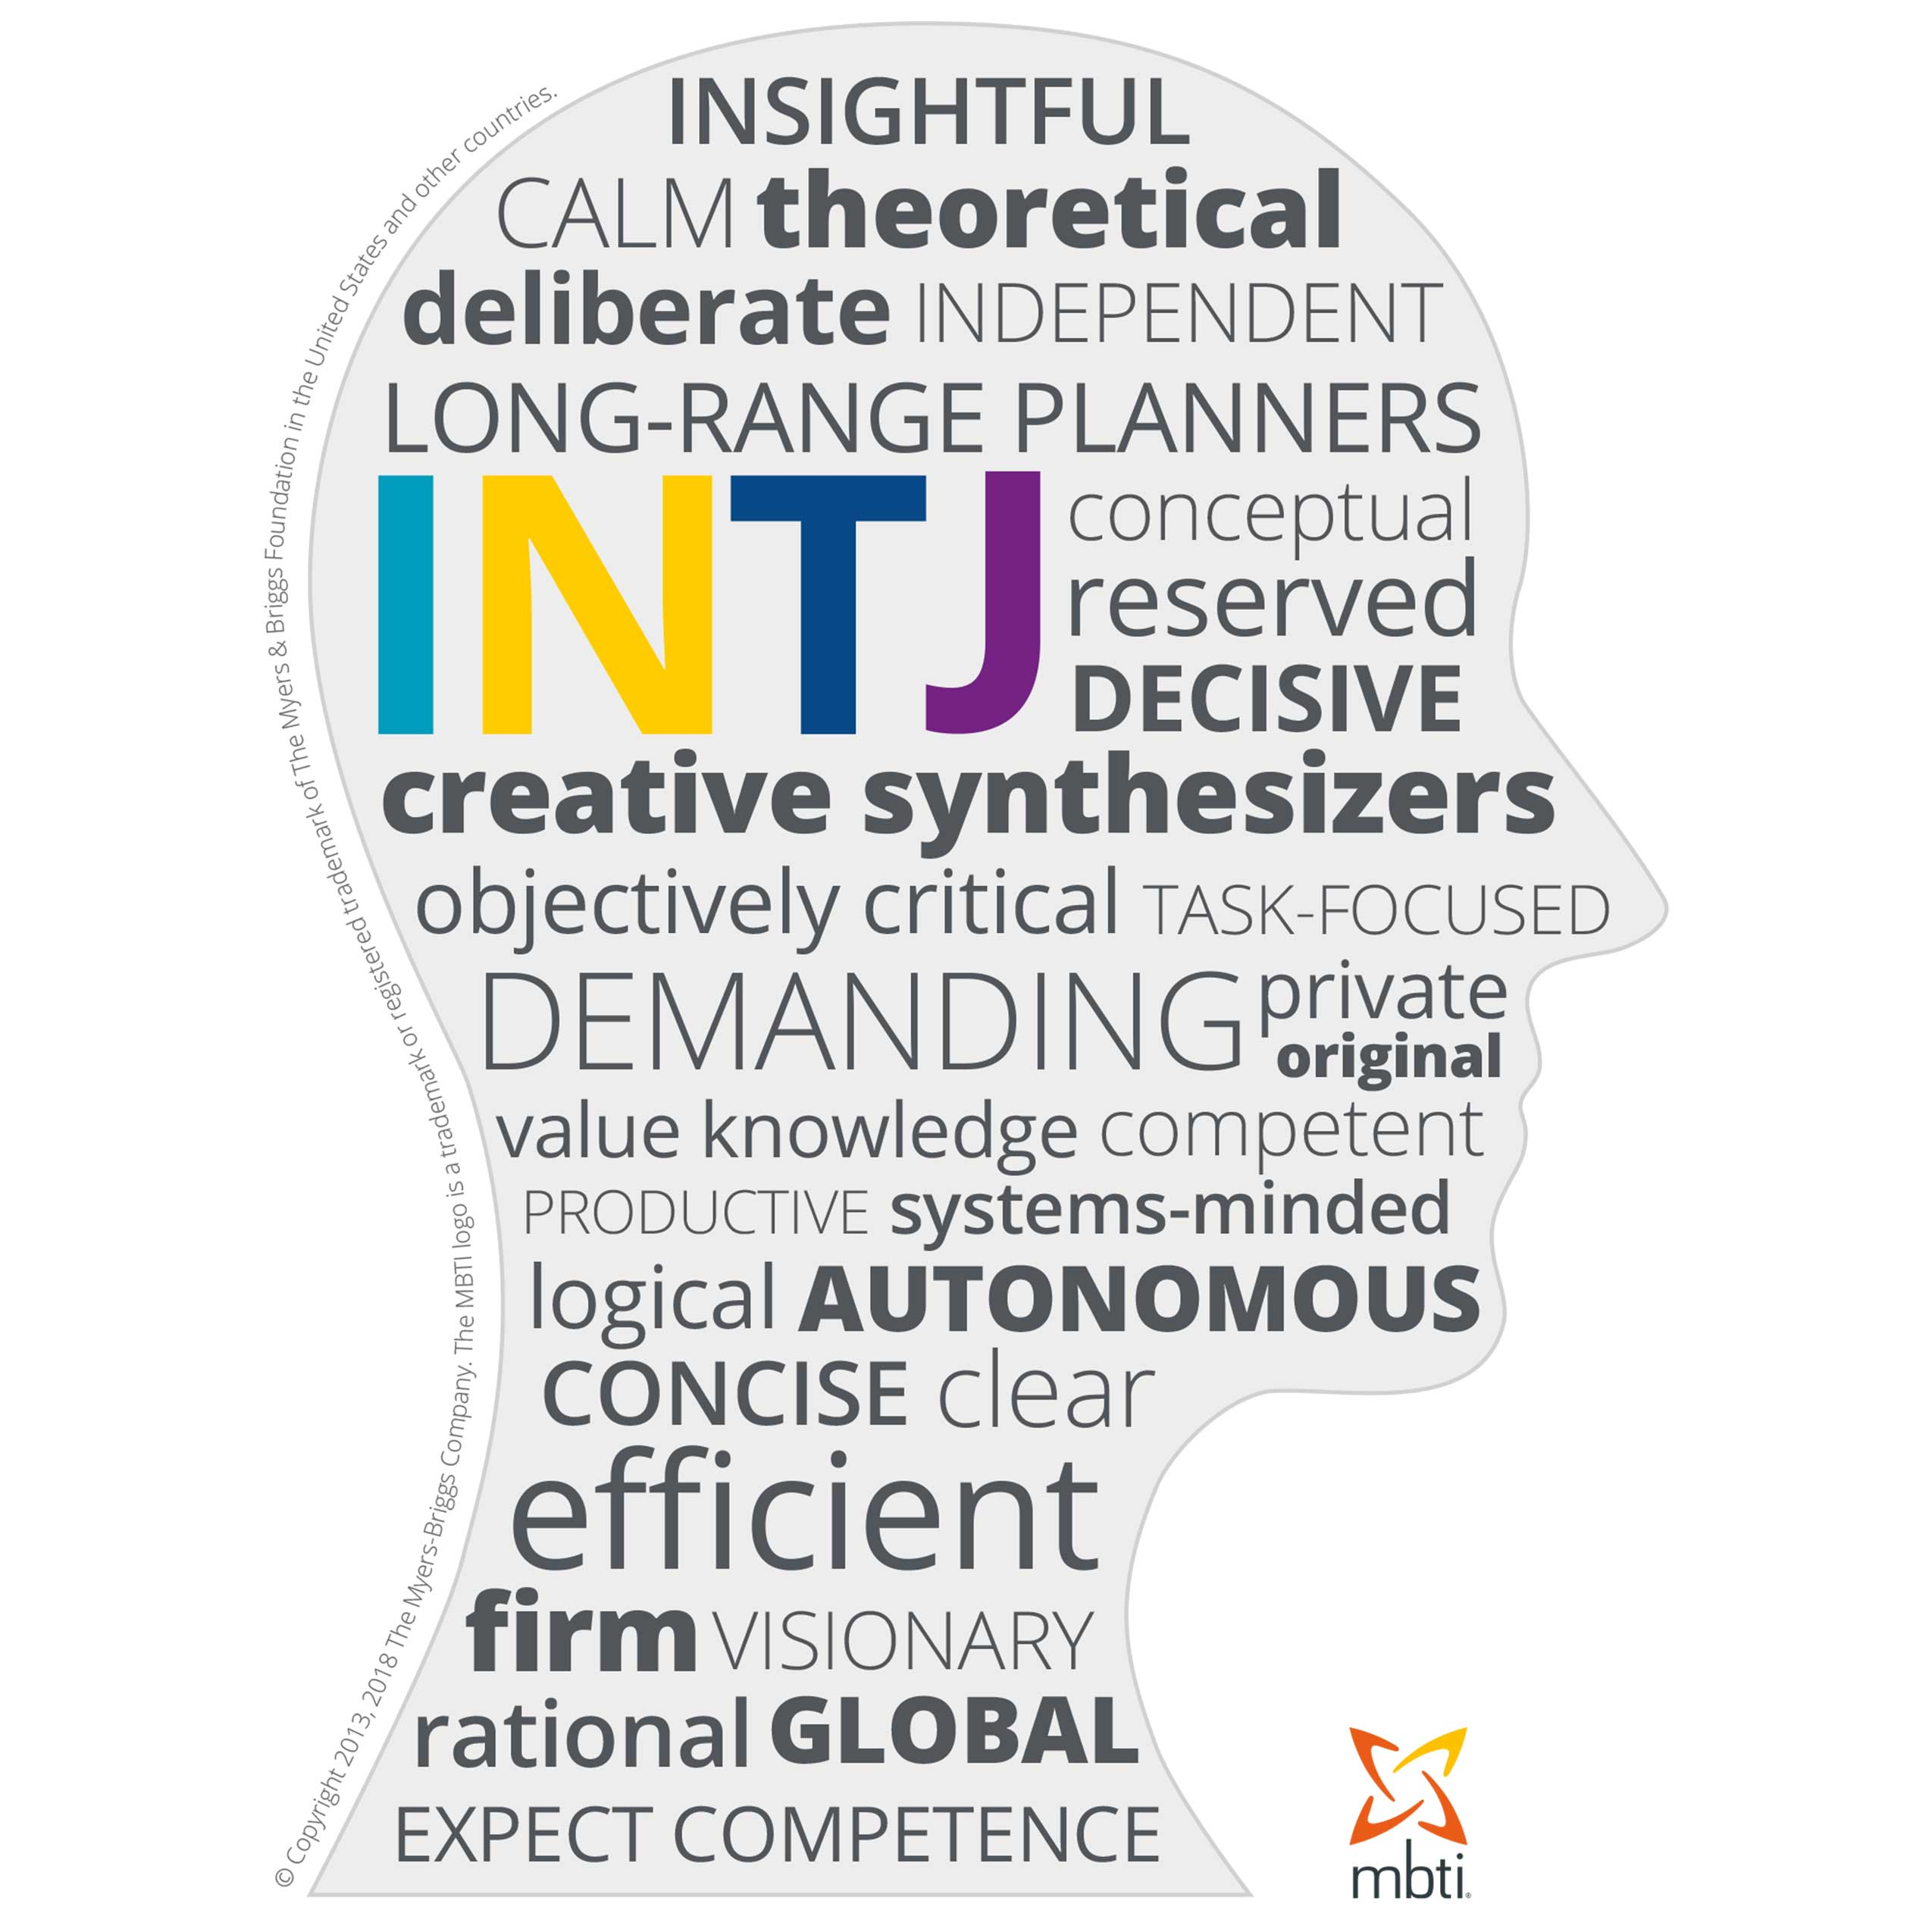 Typical characteristics of an INTJ